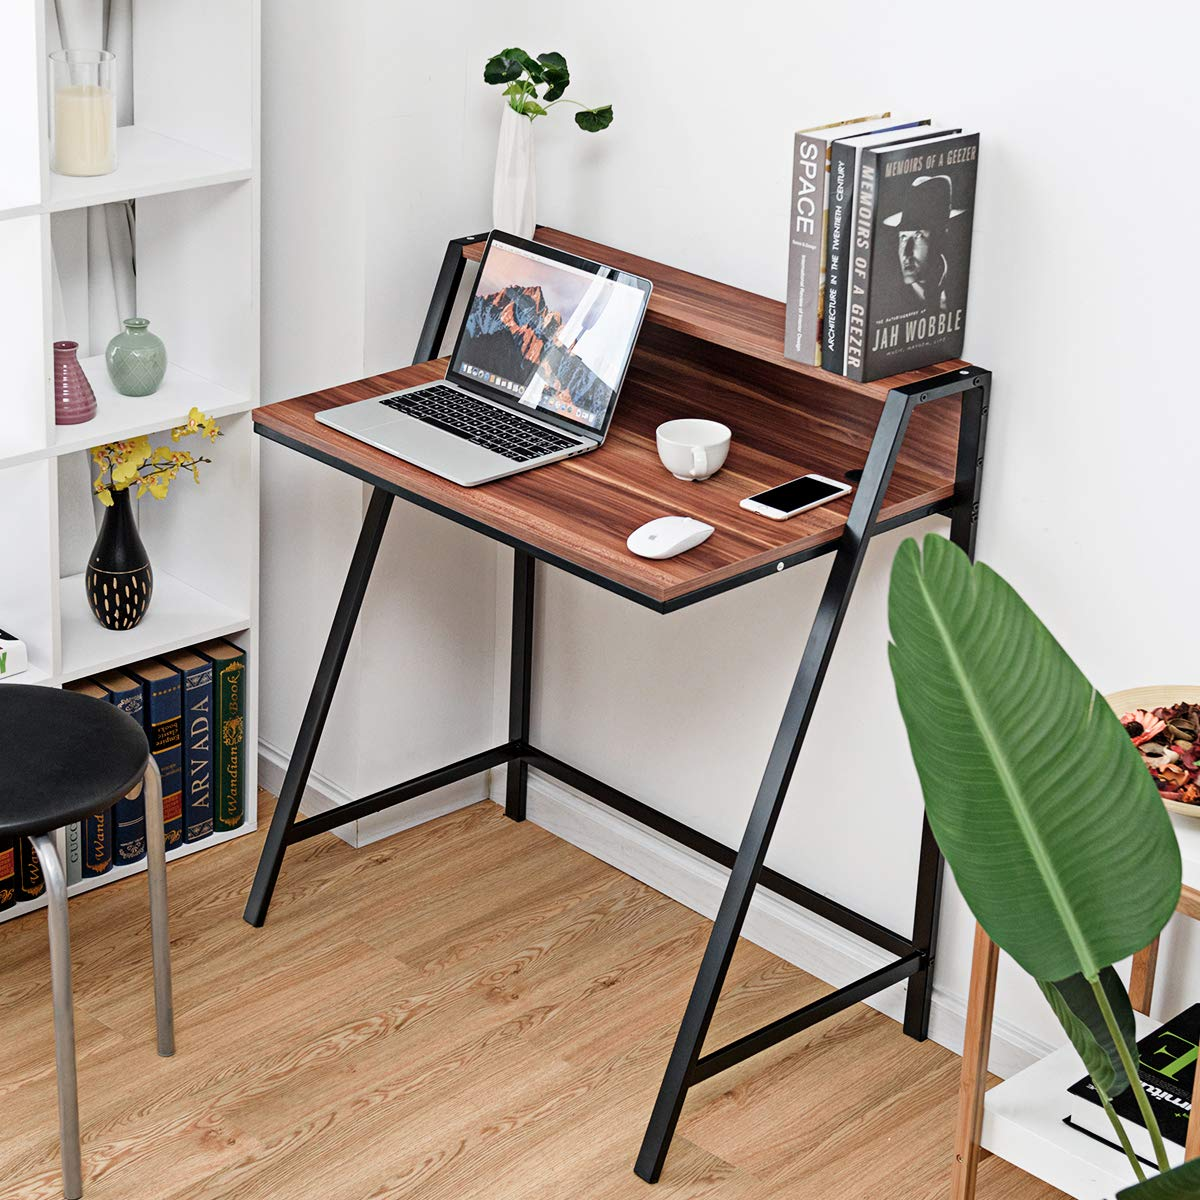 Study Writing Table Home Office Wood Sturdy Frame Compact Writing Table for Small Place Tangkula 2 Tier Computer Desk Apartment Dom Office Furniture Sofa Bed Table